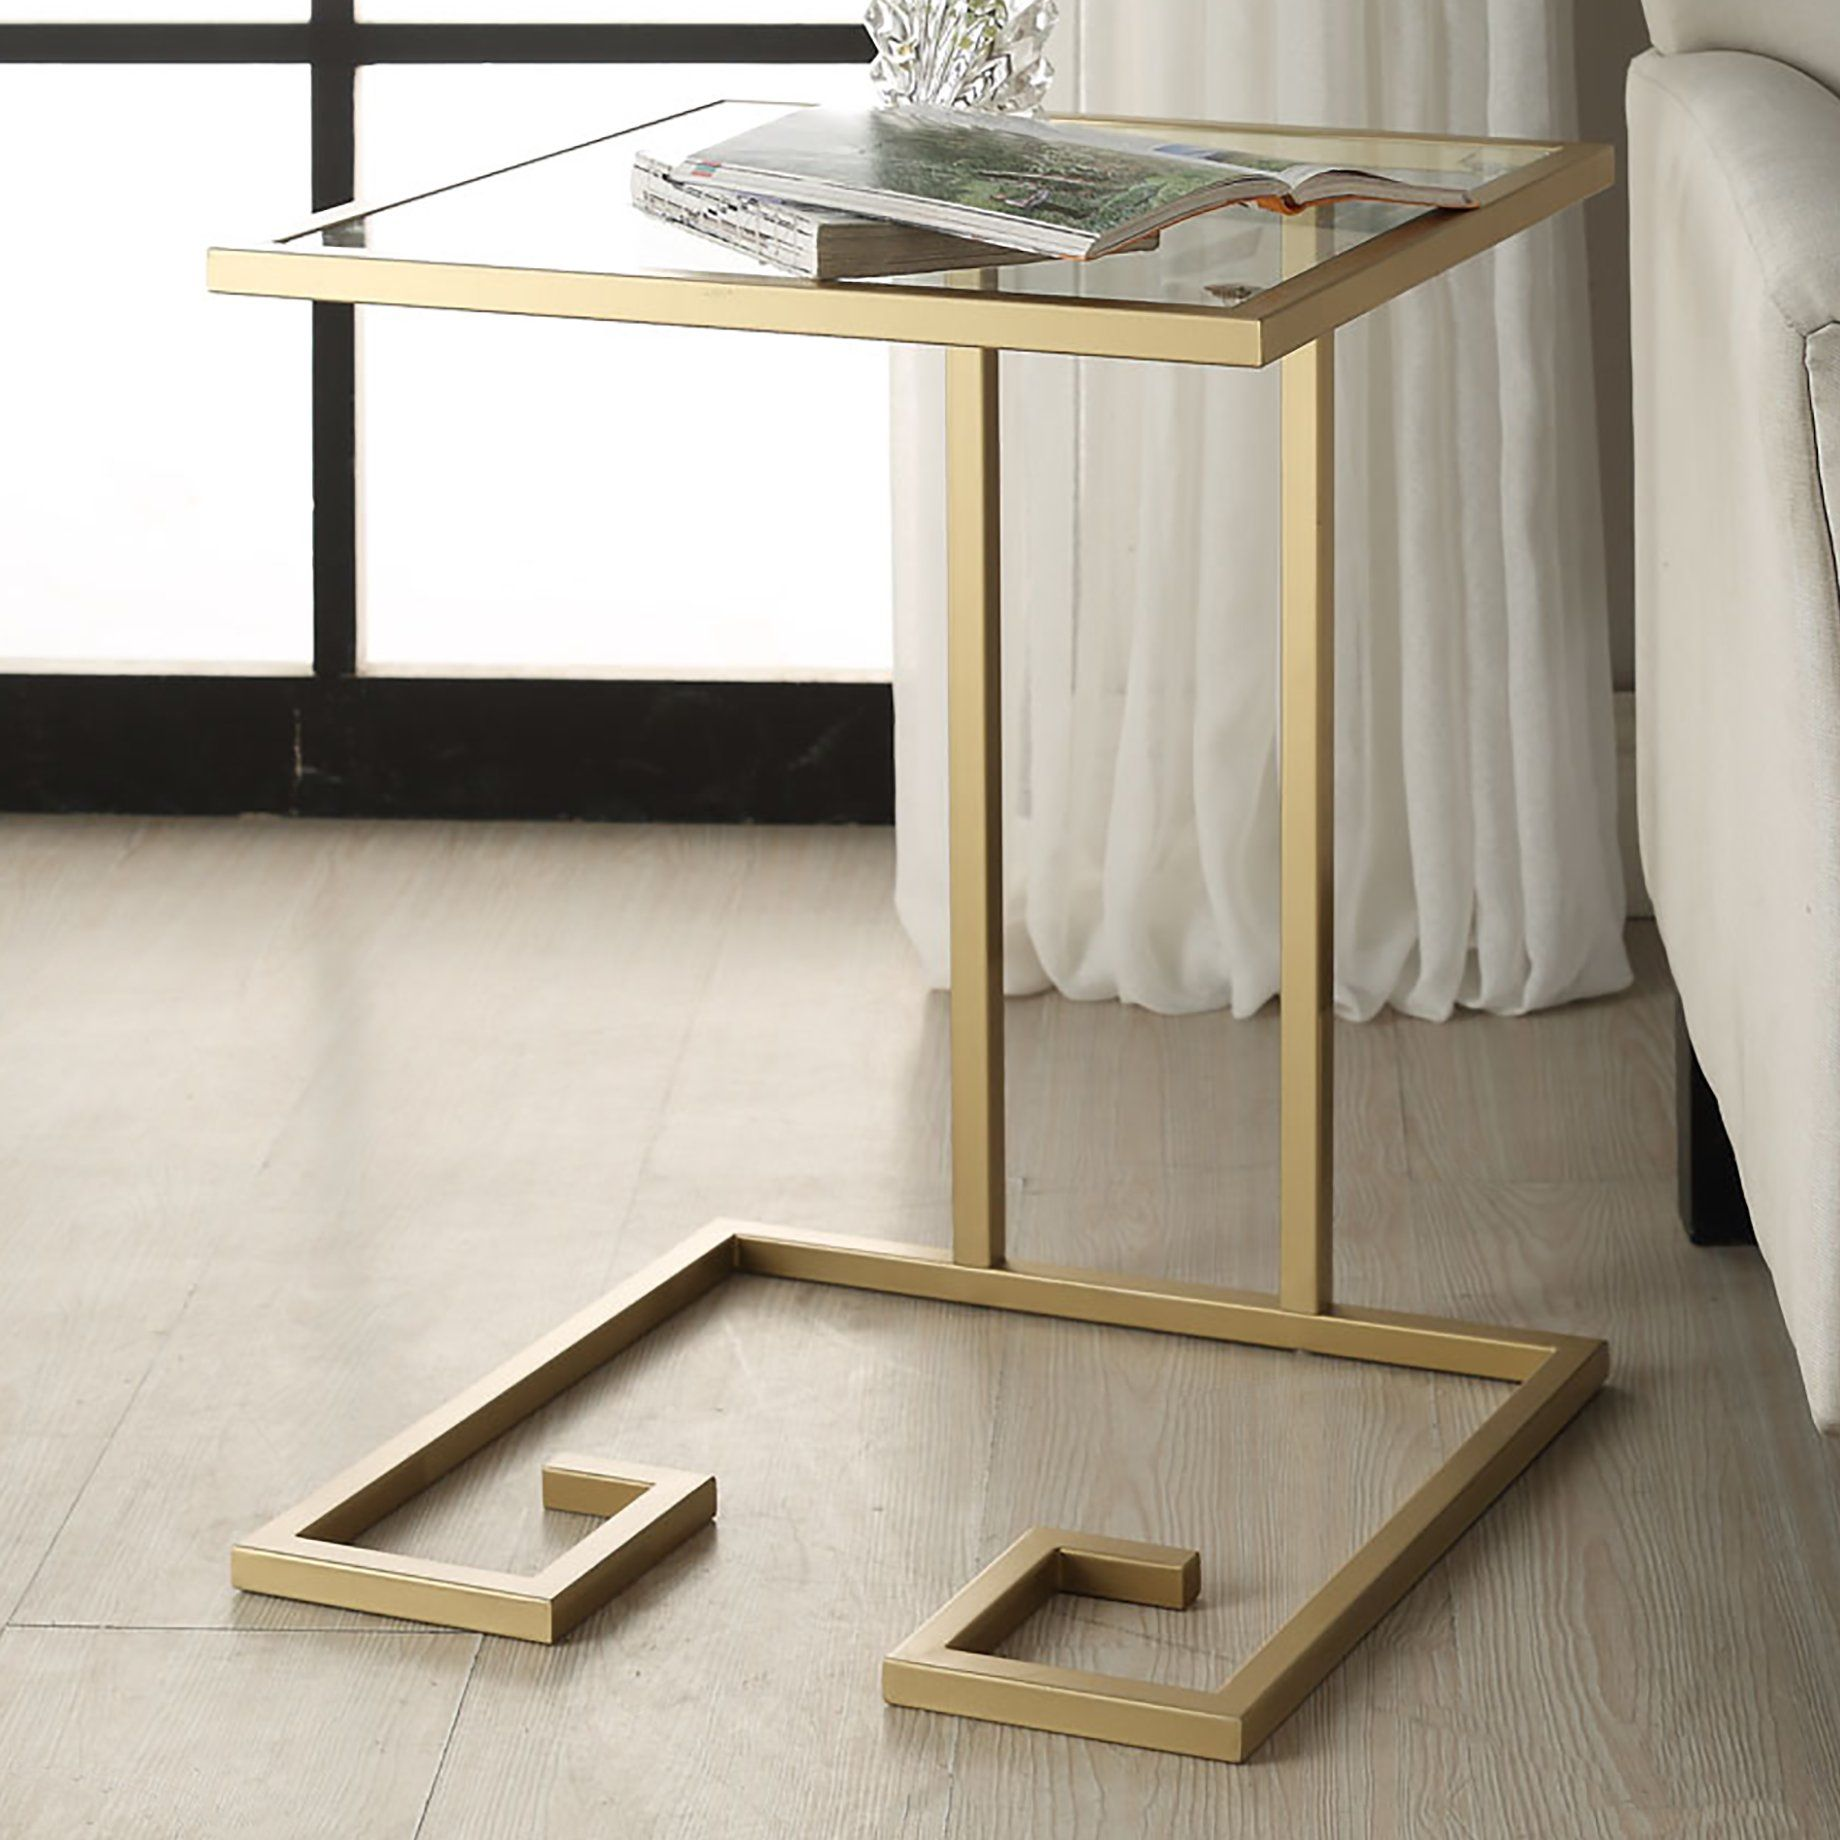 Main Image Zoomed New House Table Furniture End Tables Furniture